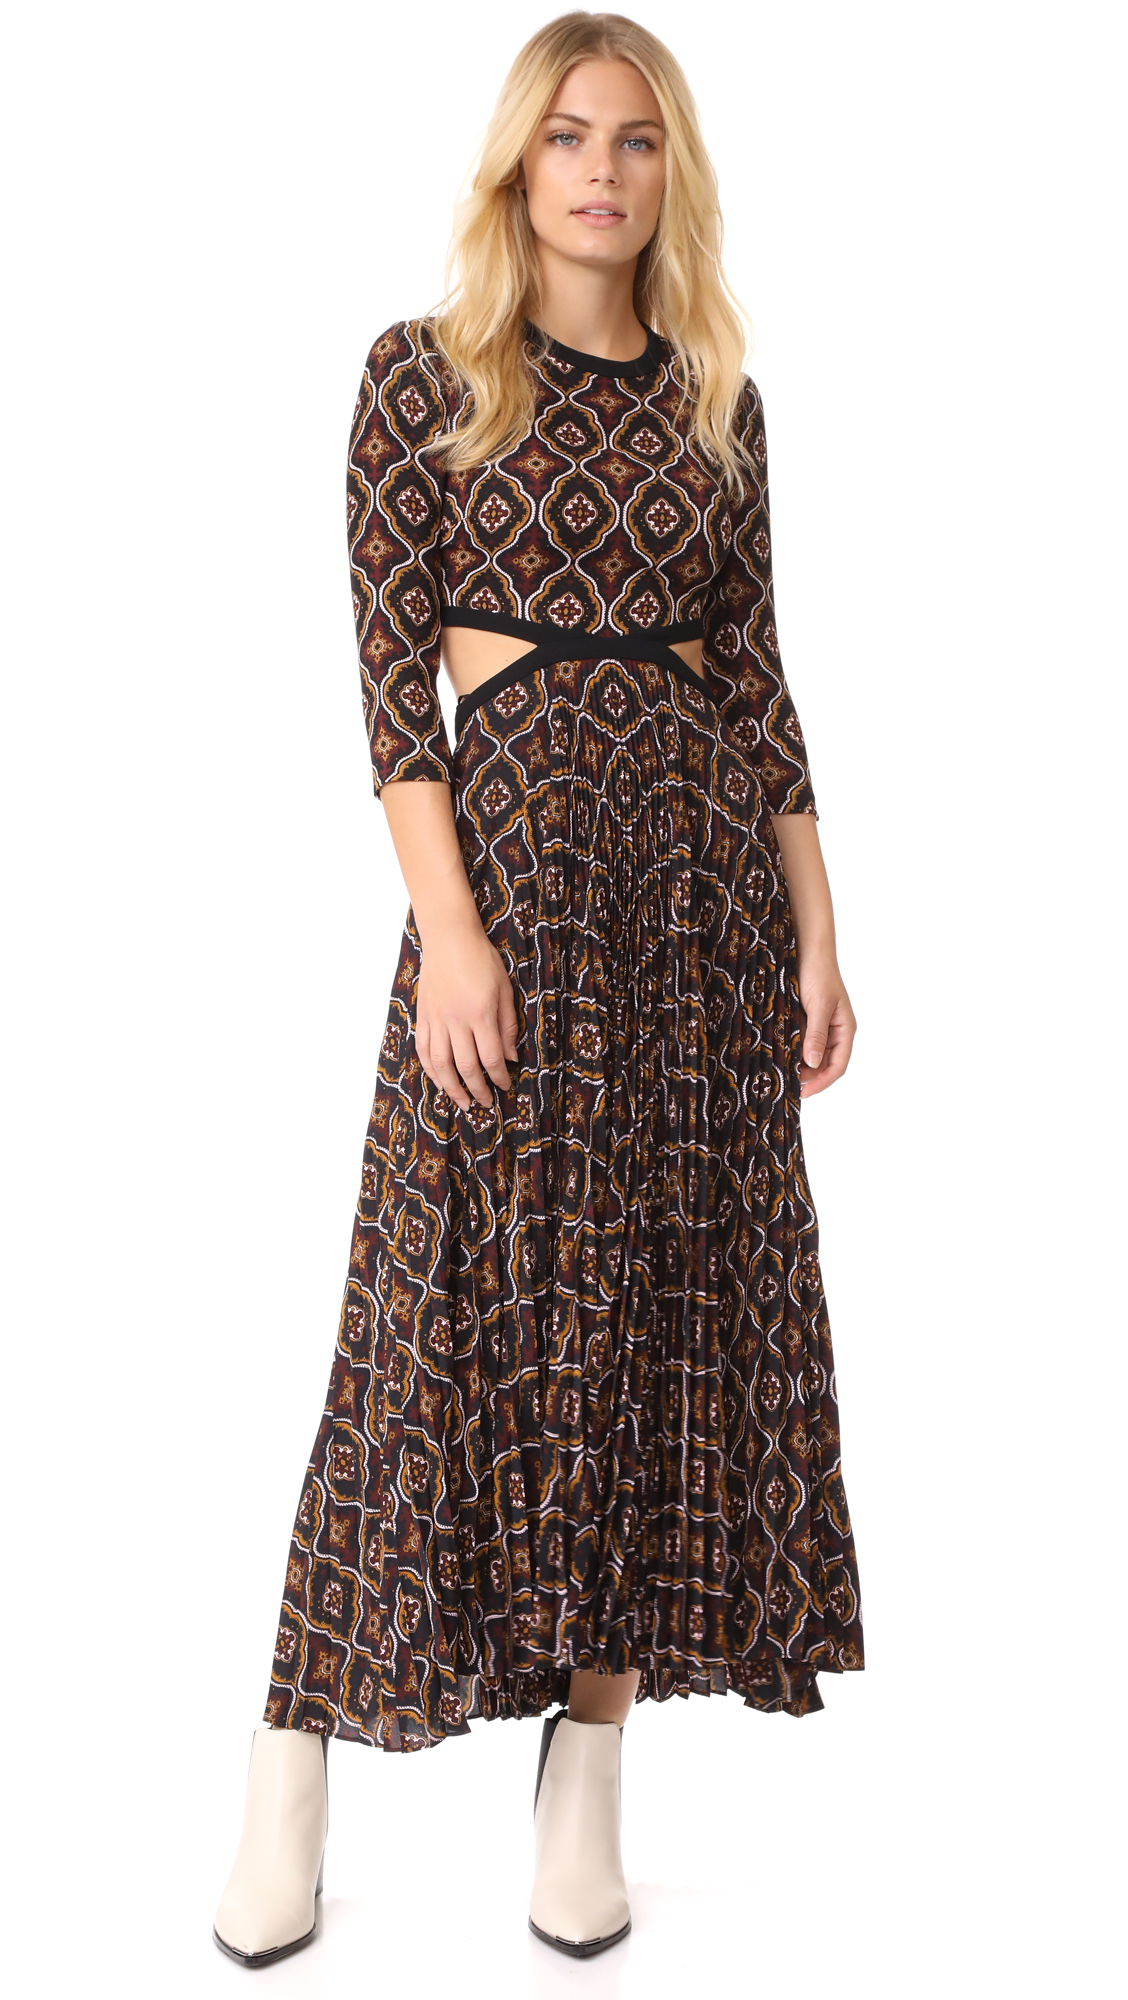 A.L.C. Holly Dress - Burgundy/Gold Multi